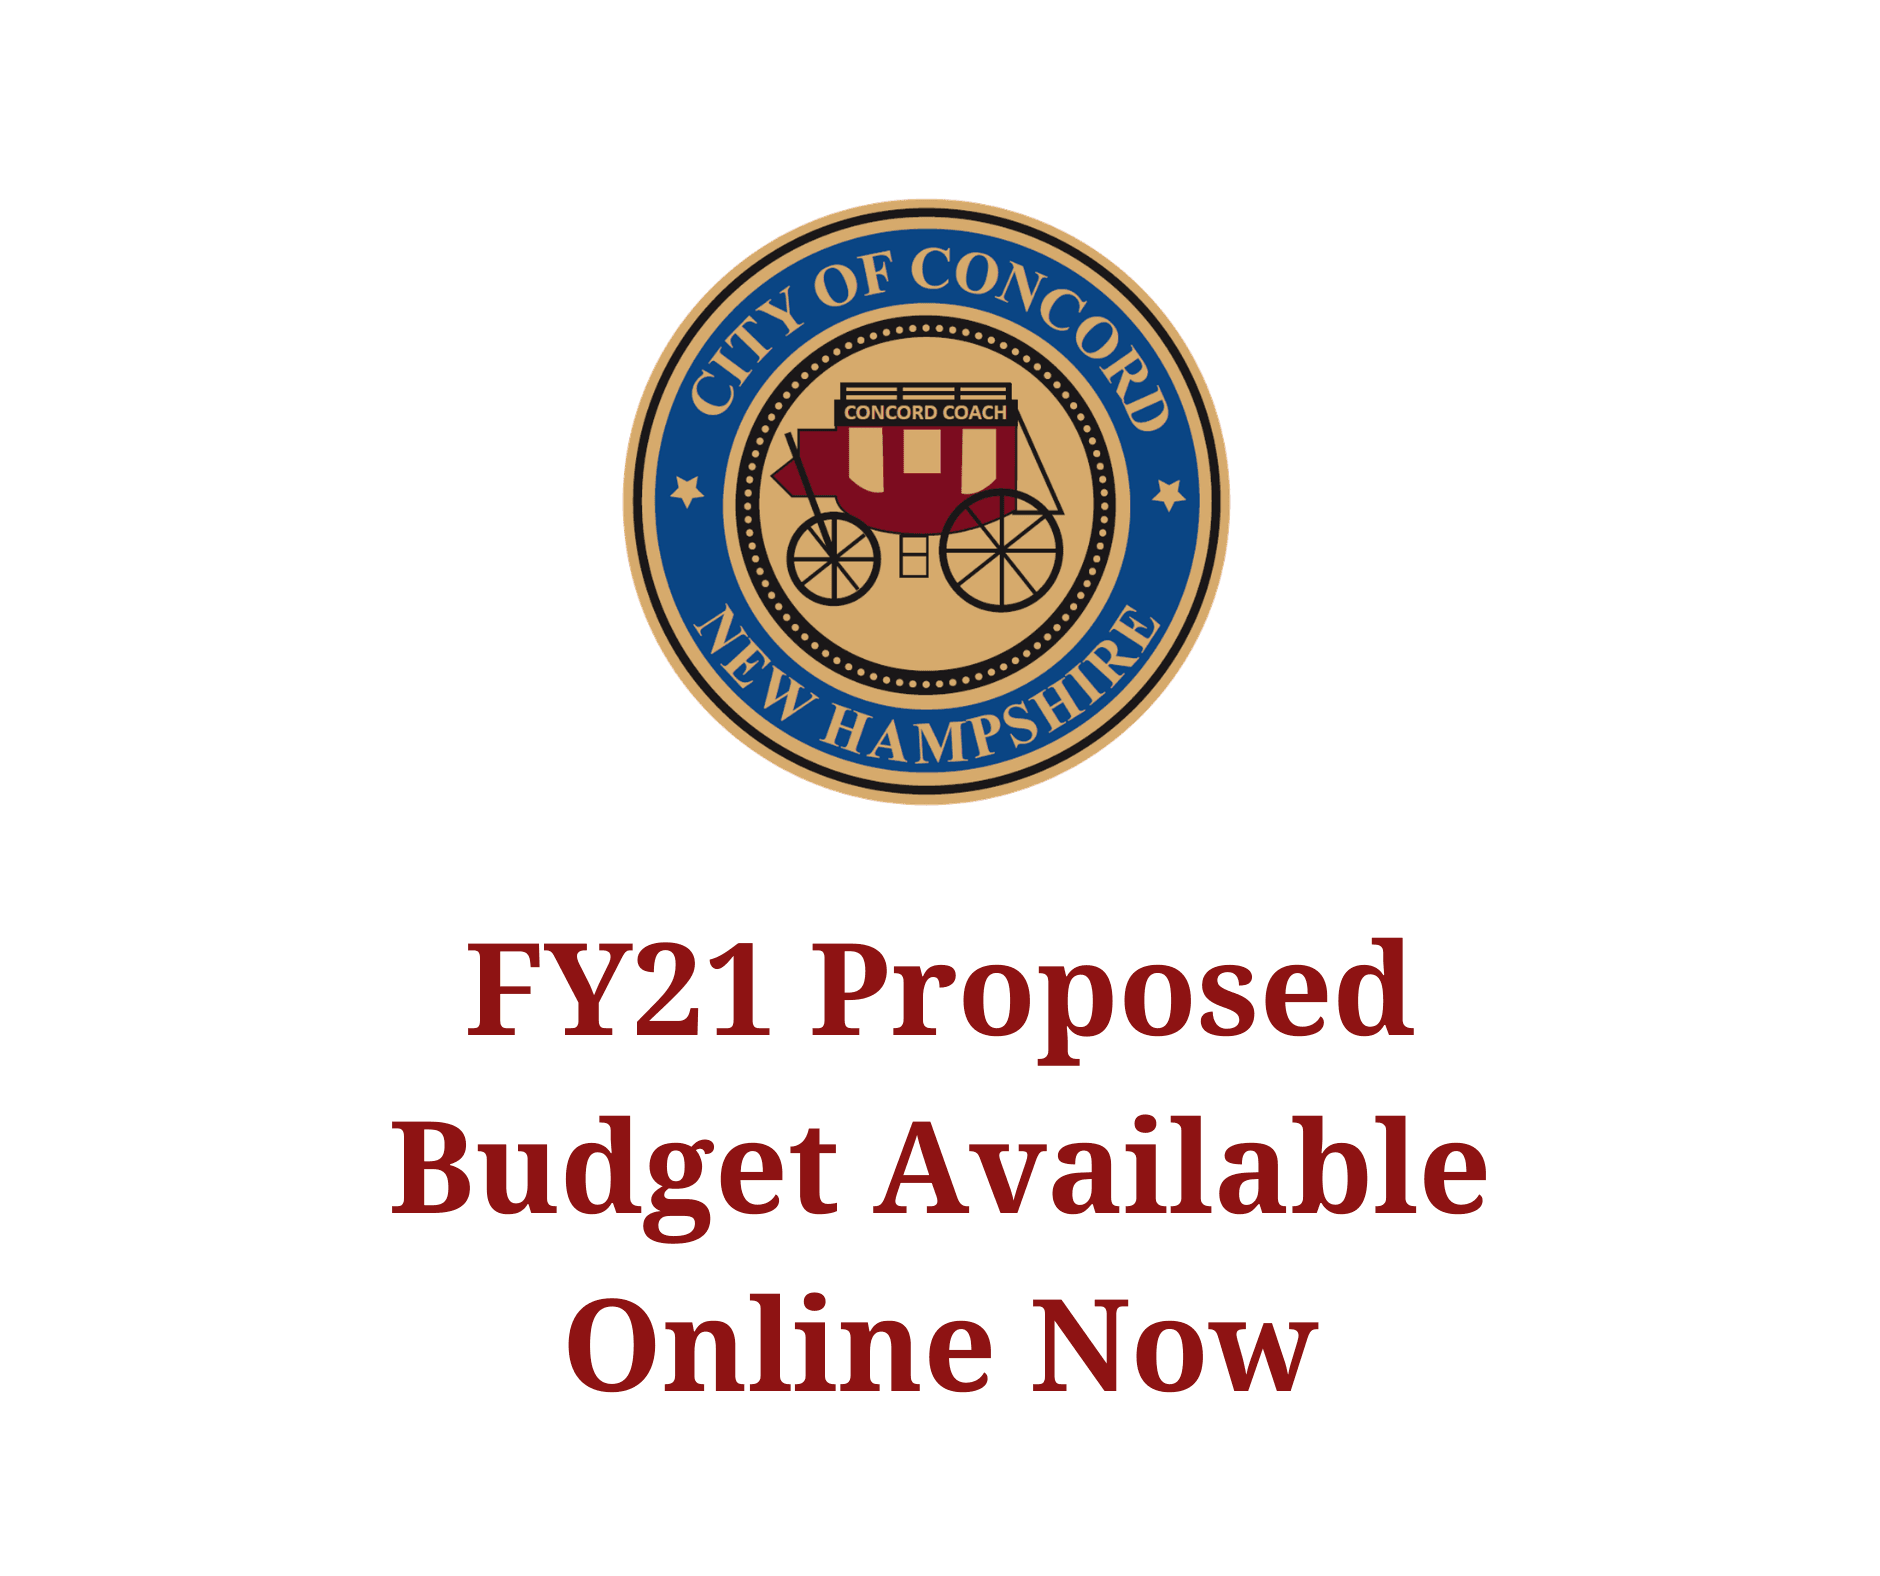 FY21 Proposed Budget Available Online Now